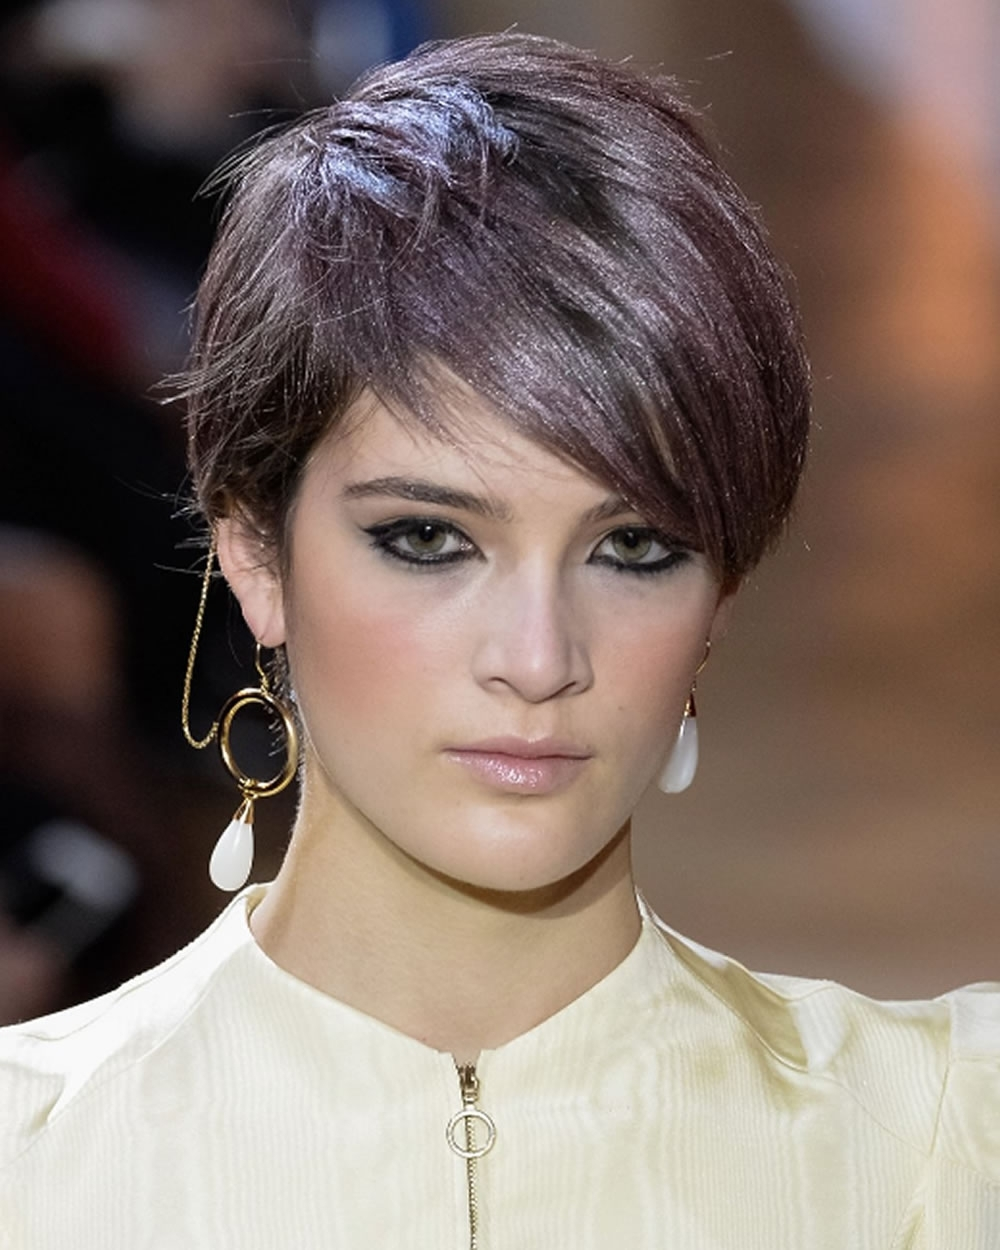 Pixie Haircuts For Fine Hair 2018 2019 : Curly, Wavy, Straight Pertaining To Most Recently Pixie Hairstyles For Straight Hair (View 8 of 15)